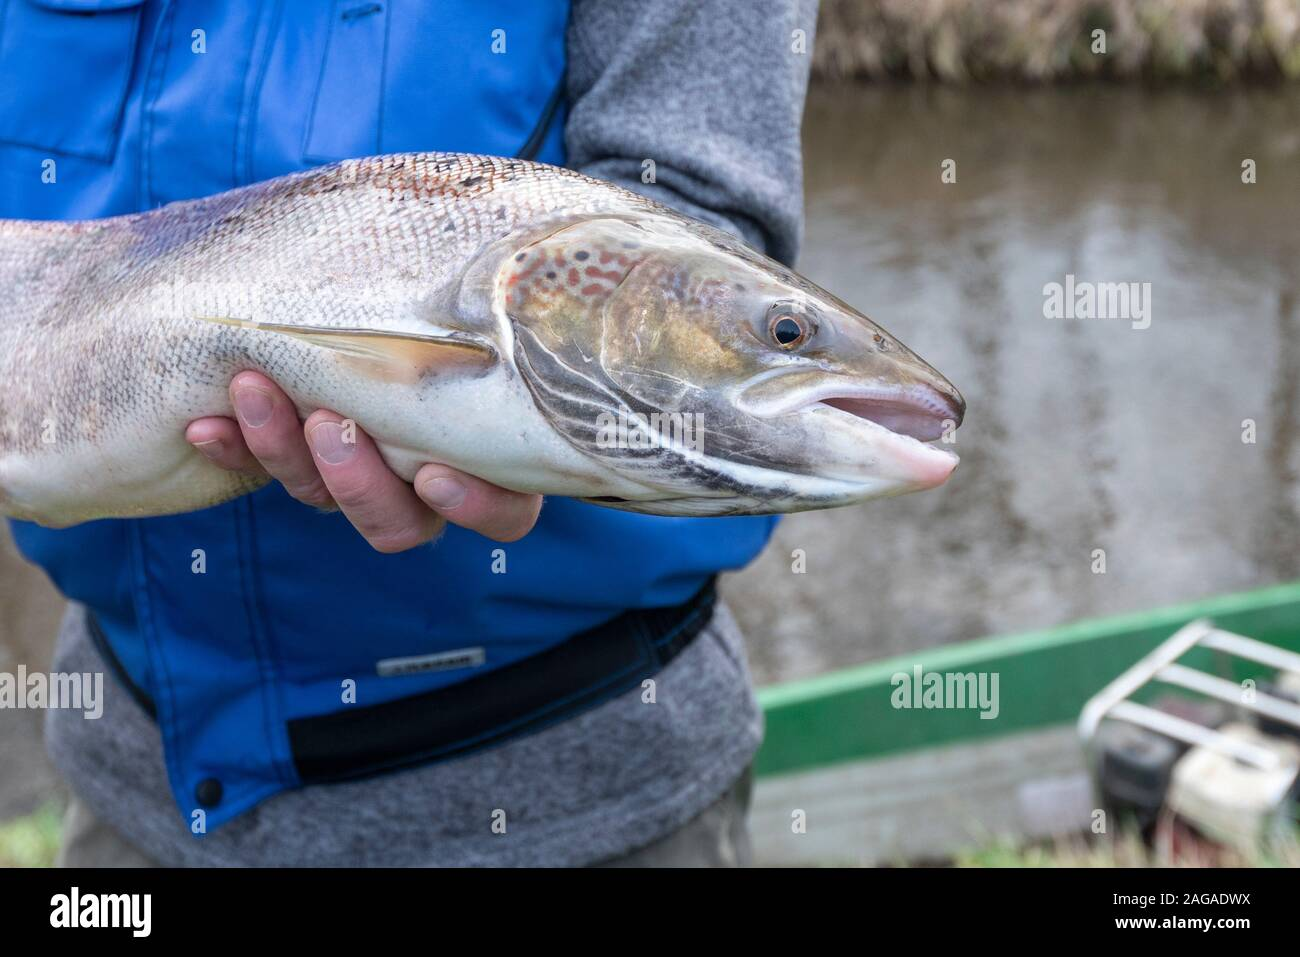 Zerbst, Saxony-Anhalt, Germany. 18th Dec 2019. view of a salmon weighing four kilos. It was caught during a trial fishing by scientists of the Institute for Inland Fisheries with an electric landing net, measured, marked and put back into the river. The action proved that some salmon had returned to the Nuthe near Zerbst to spawn in the International Year of Salmon 2019. They were there years ago when young salmon were released and migrated to the Atlantic and are now returning. Credit: Mattis Kaminer/Alamy Live News Stock Photo